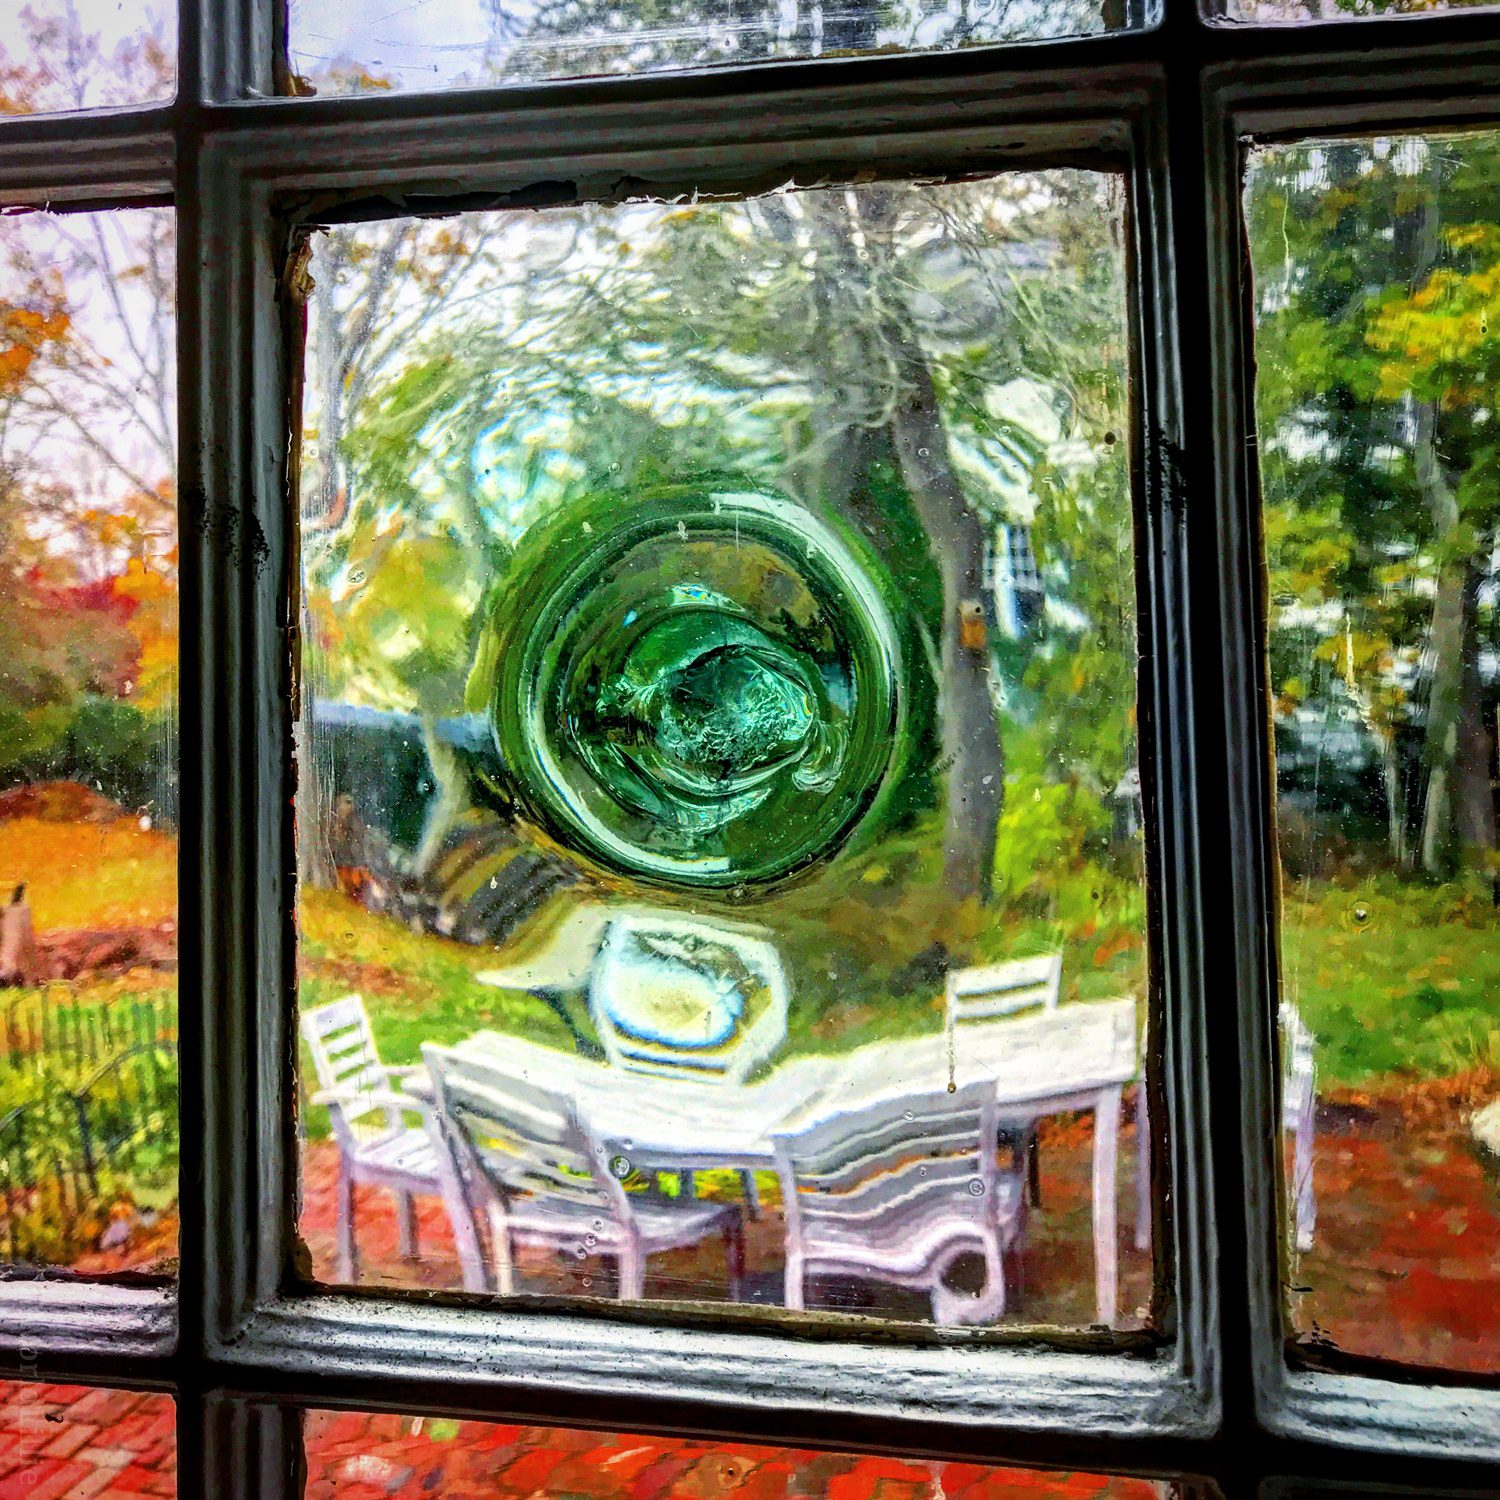 A warped window at a historic Cape Cod house.